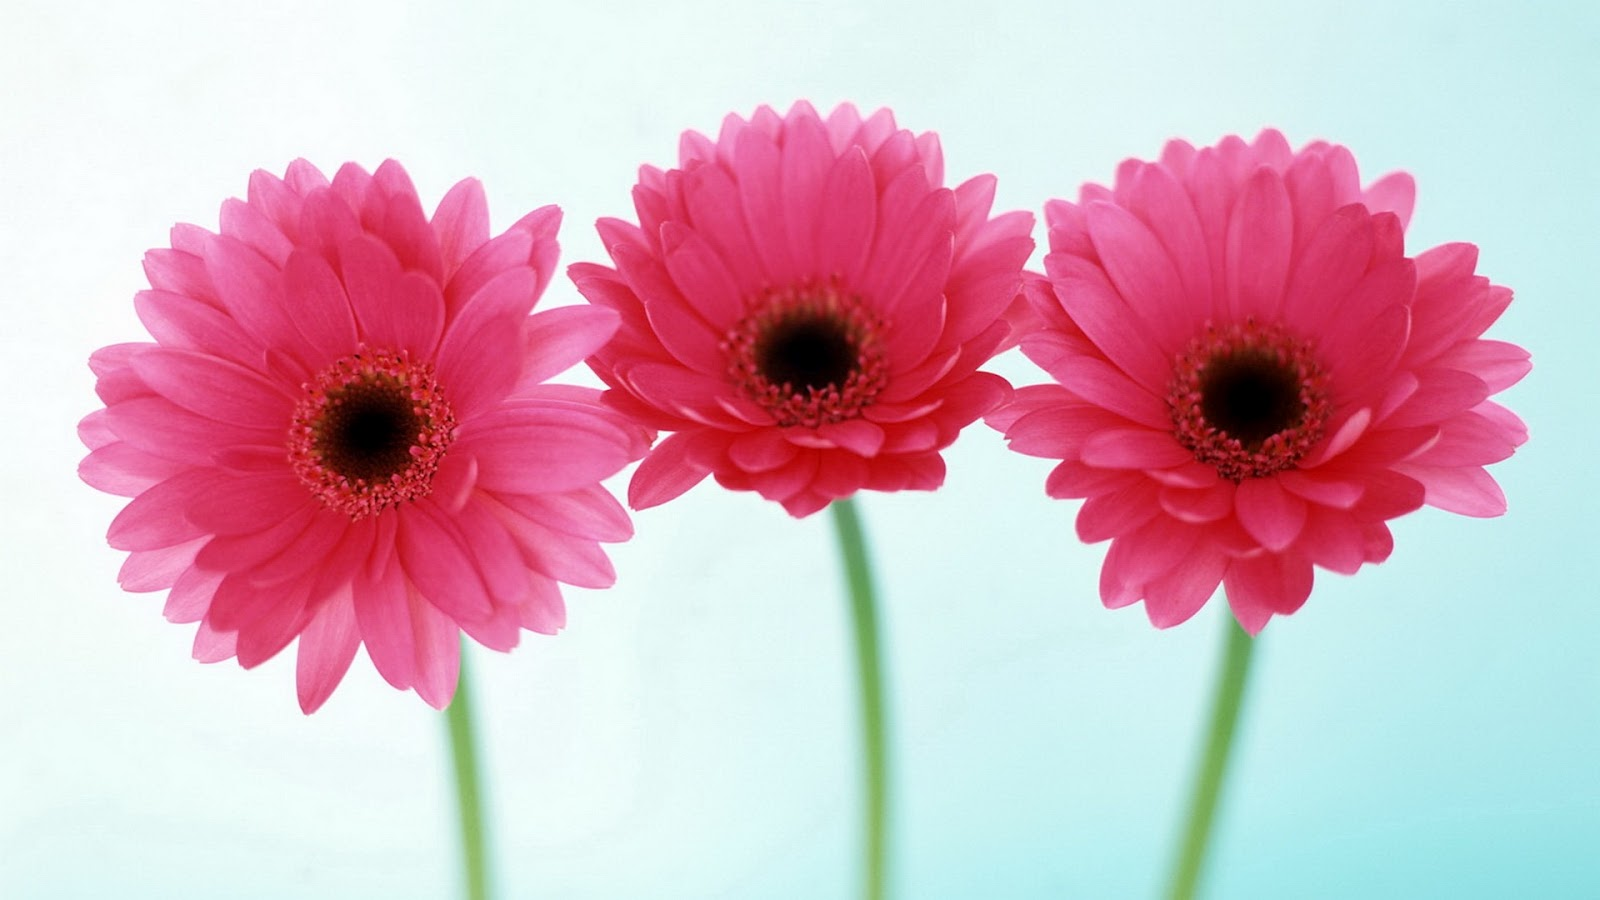 flowers for flower lovers.: HD flowers wallpapers.